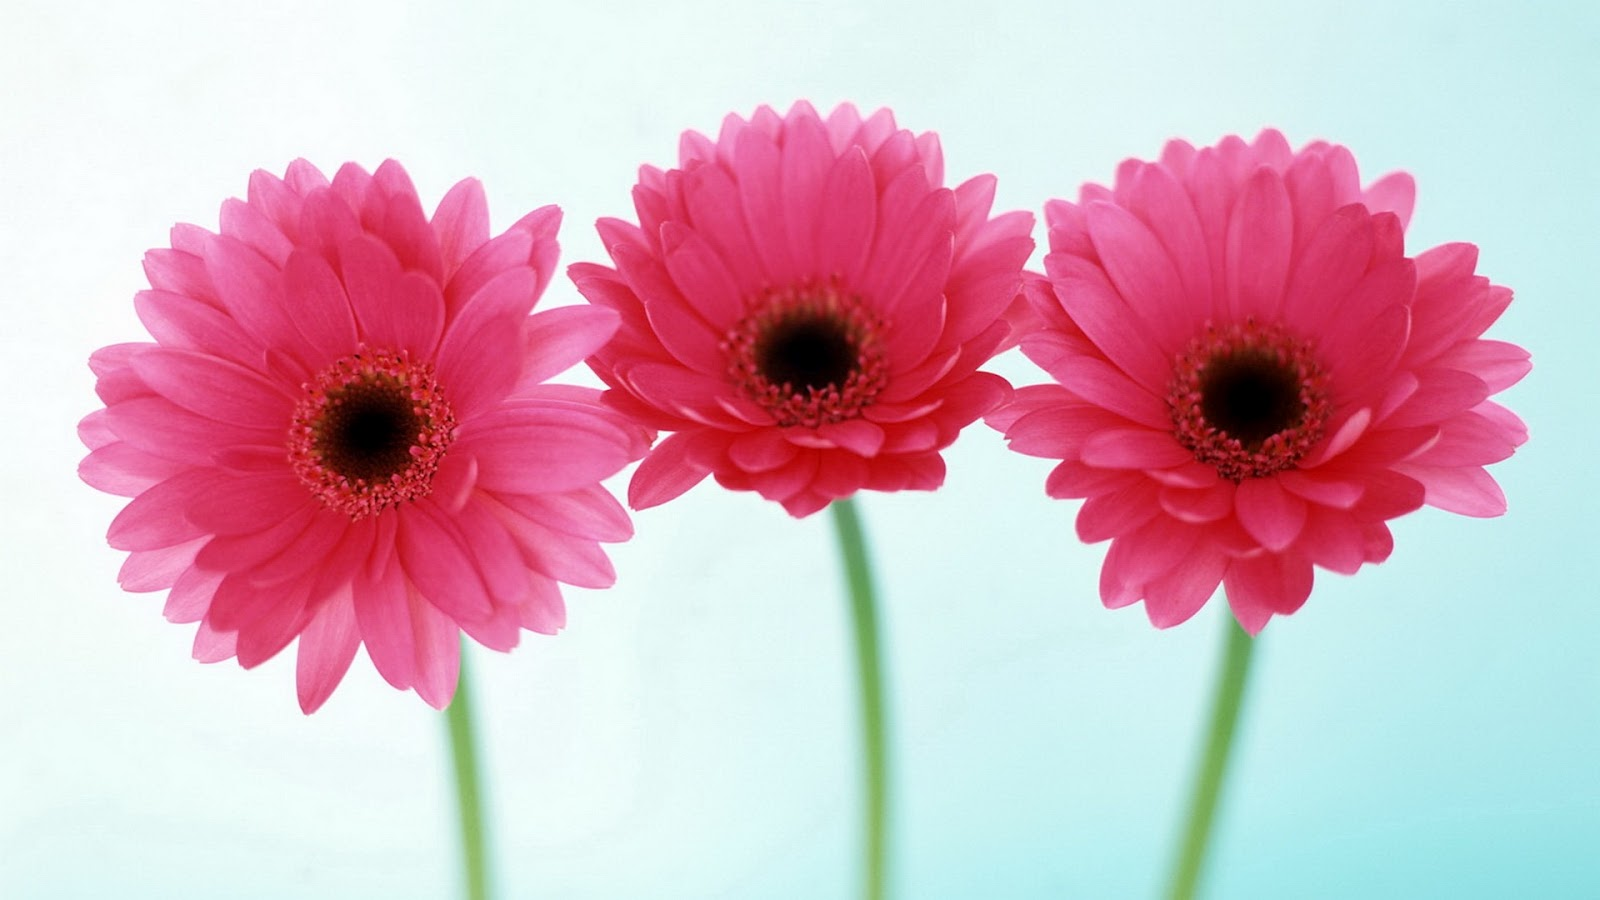 flowers for flower lovers.: HD flowers wallpapers.